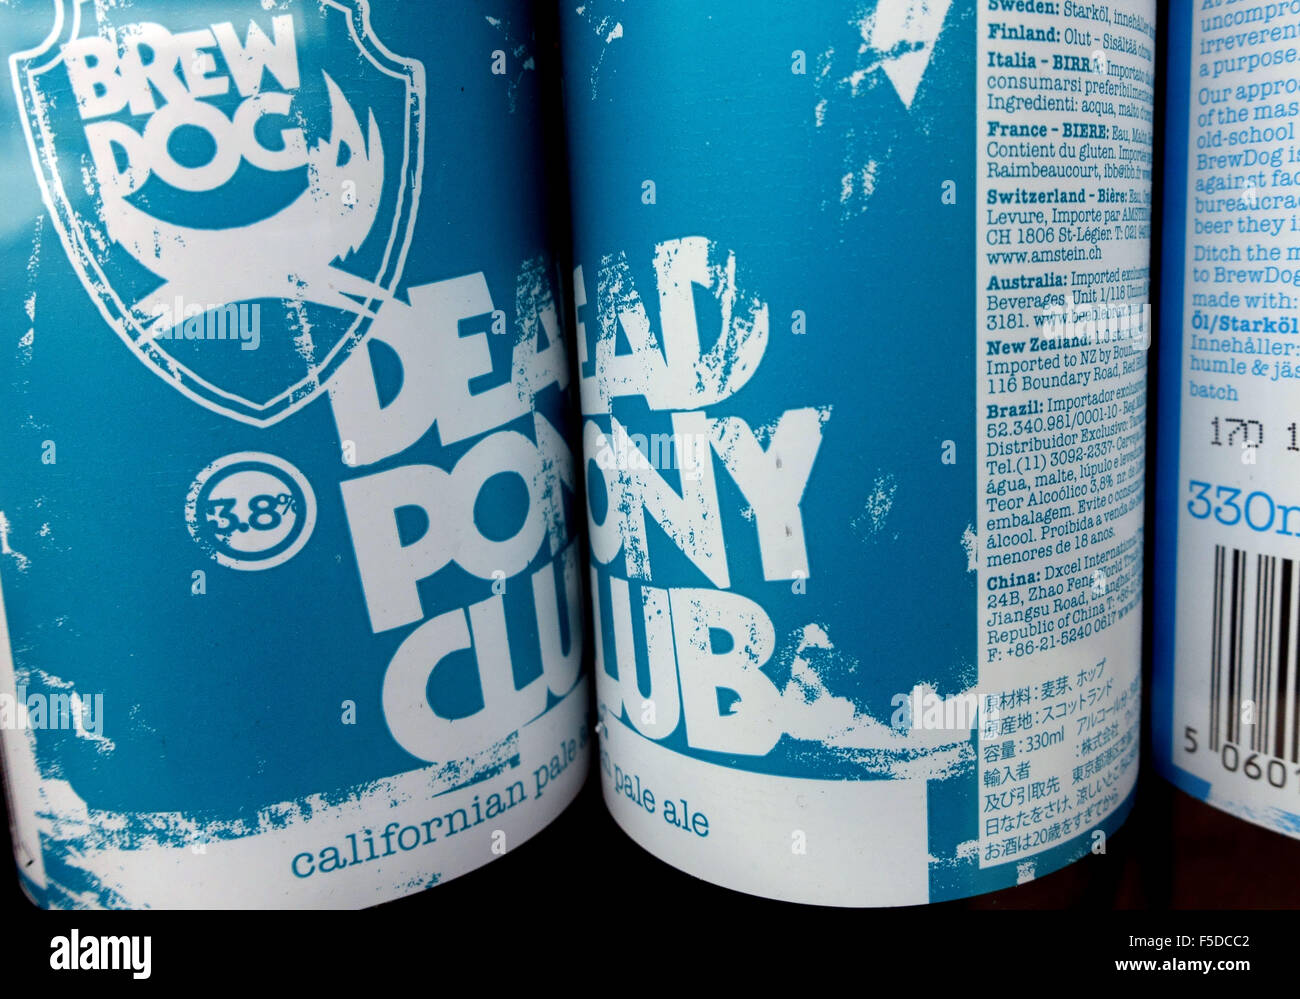 Dead Pony Club Californian pale ale by Brew Dog, London - Stock Image